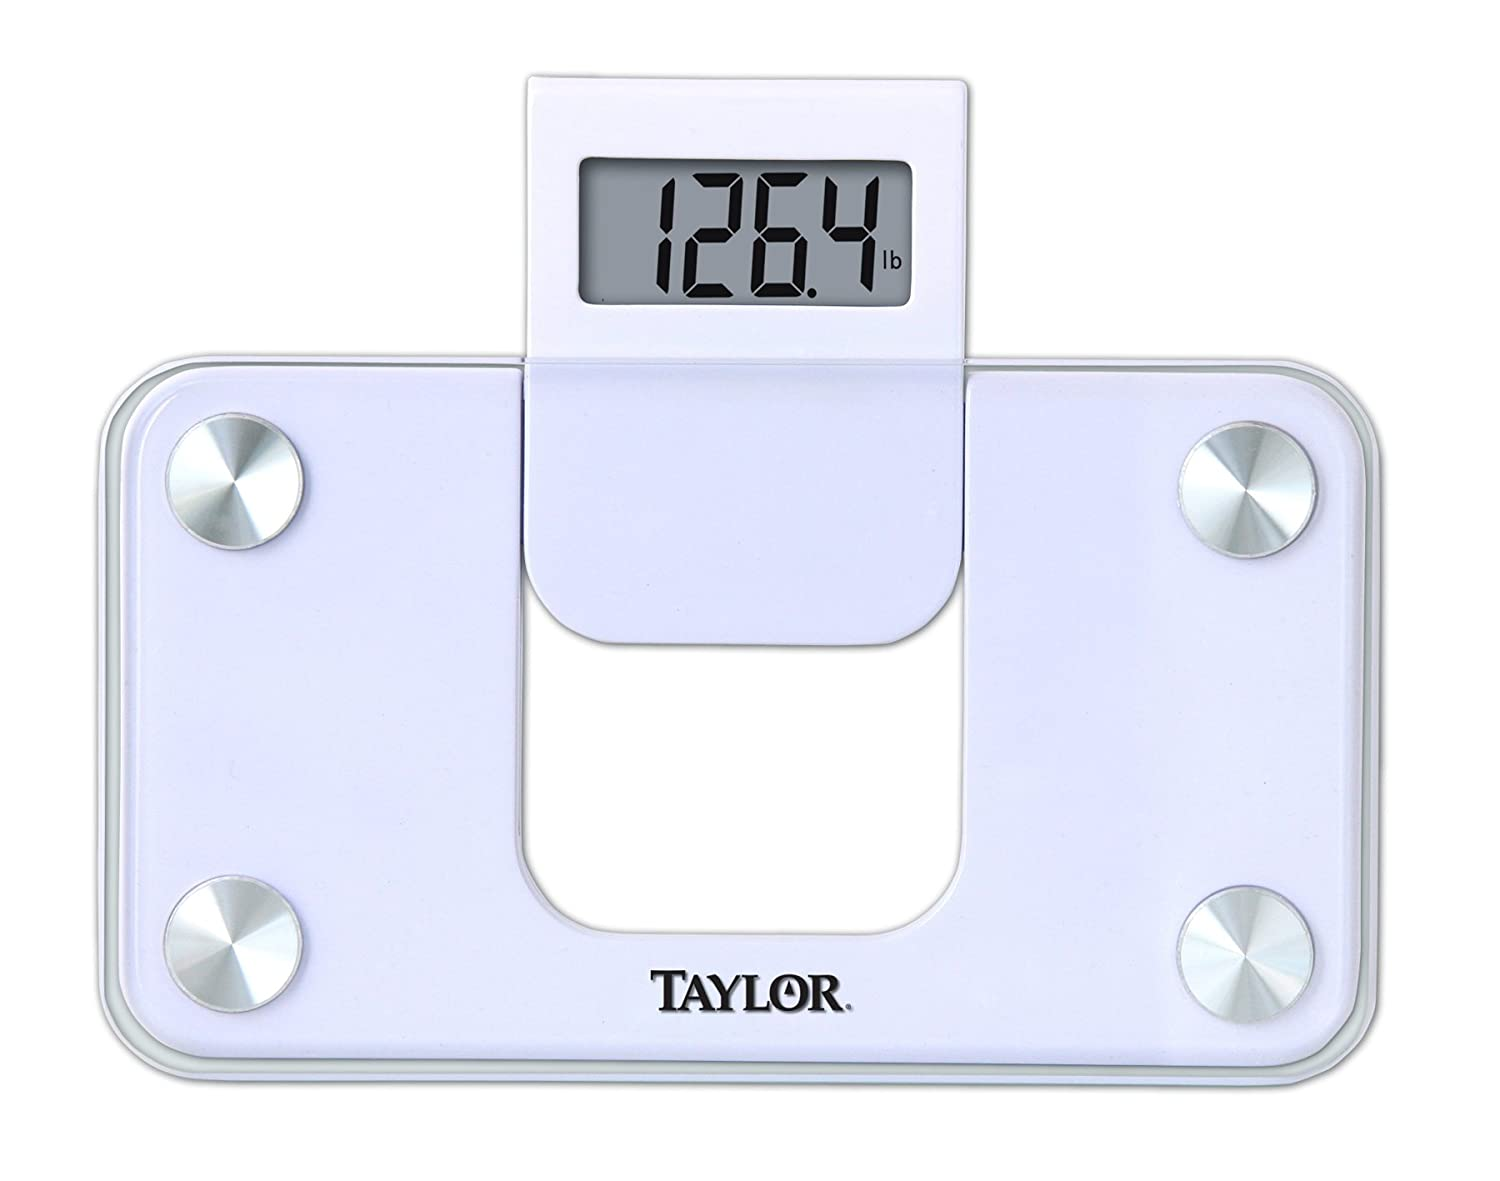 Bathroom scale accuracy consistency - Amazon Com Taylor Precision Products Digital Glass Mini Scale With Expandable Readout White Health Personal Care